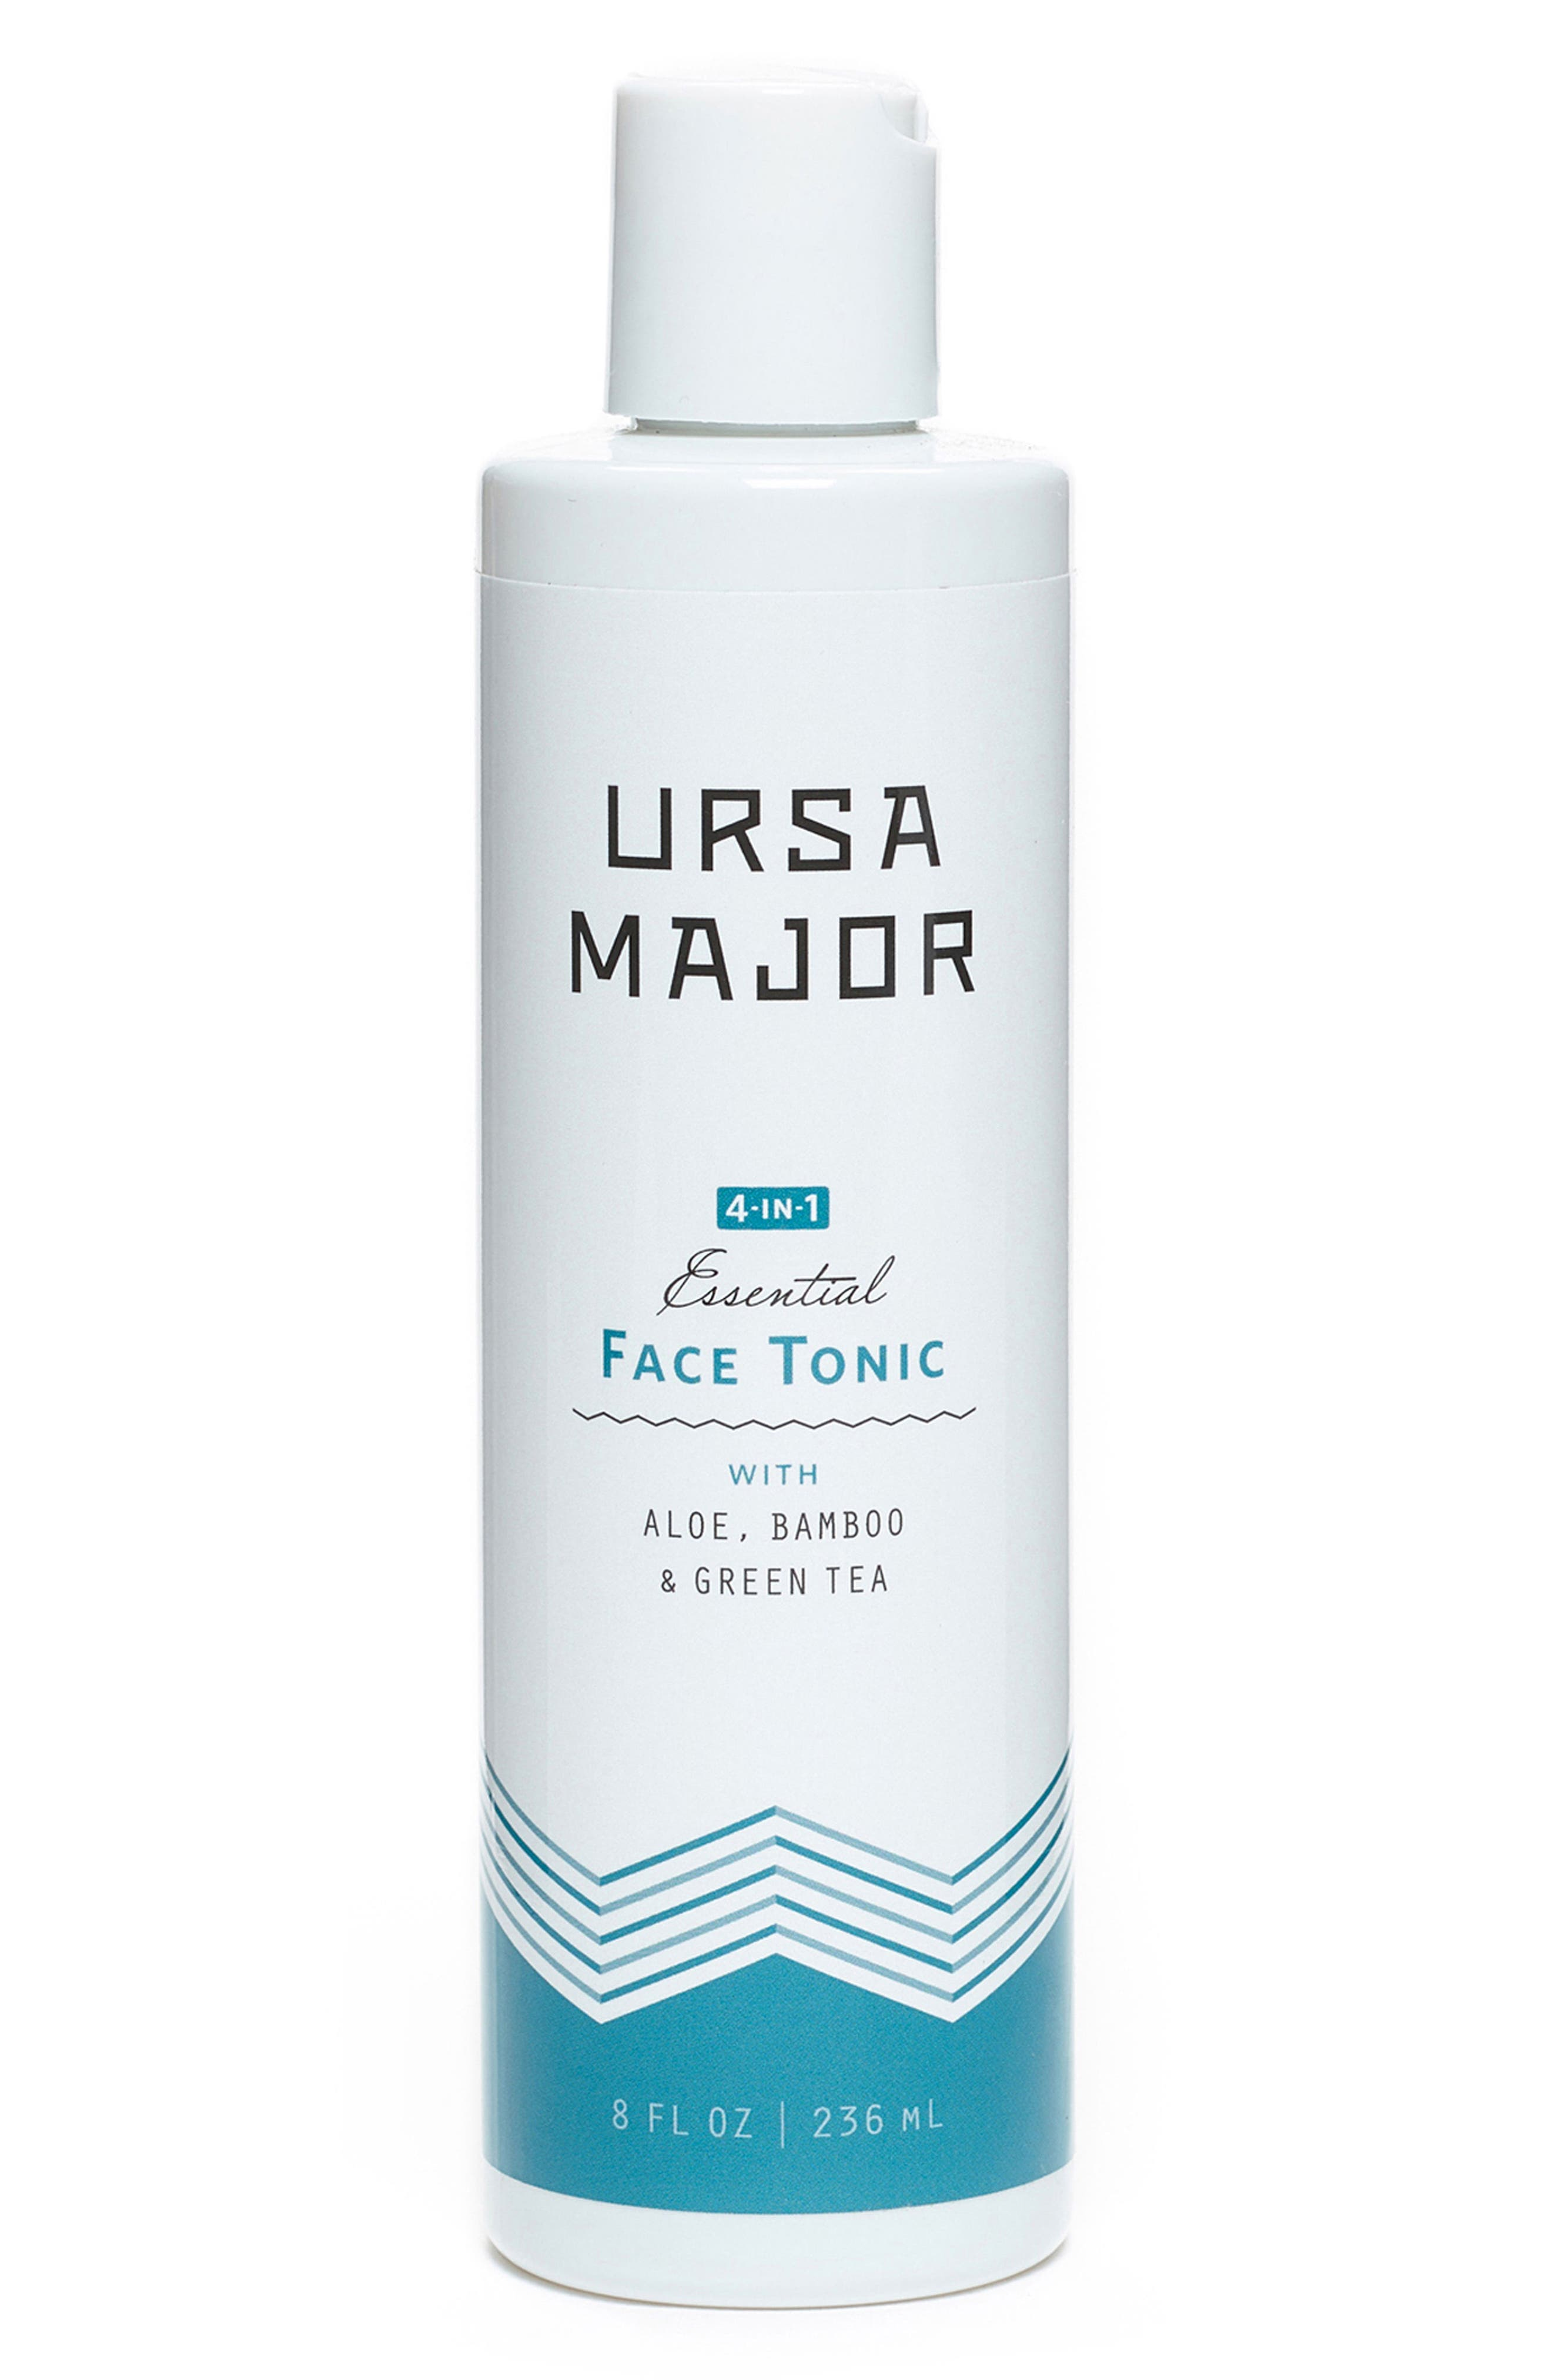 4-in-1 Essential Face Tonic,                         Main,                         color, No Color